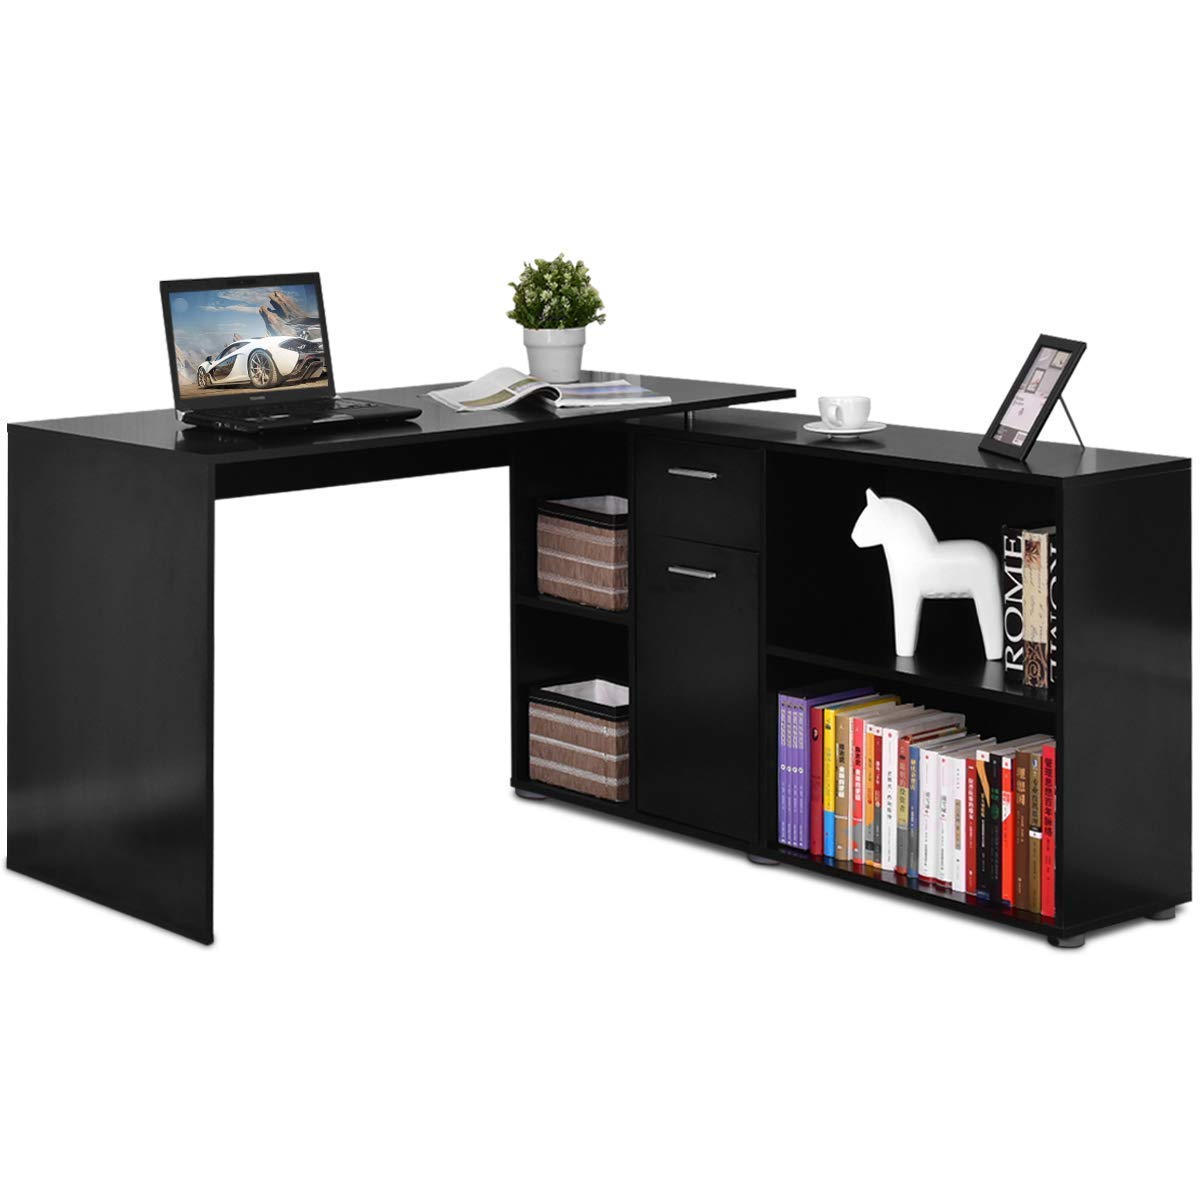 Tangkula L Shaped Desk Corner Desk, Home Office Wood Computer Workstation, Space Saving Computer Desk with Spacious Wooden Surface, Storage Shelves